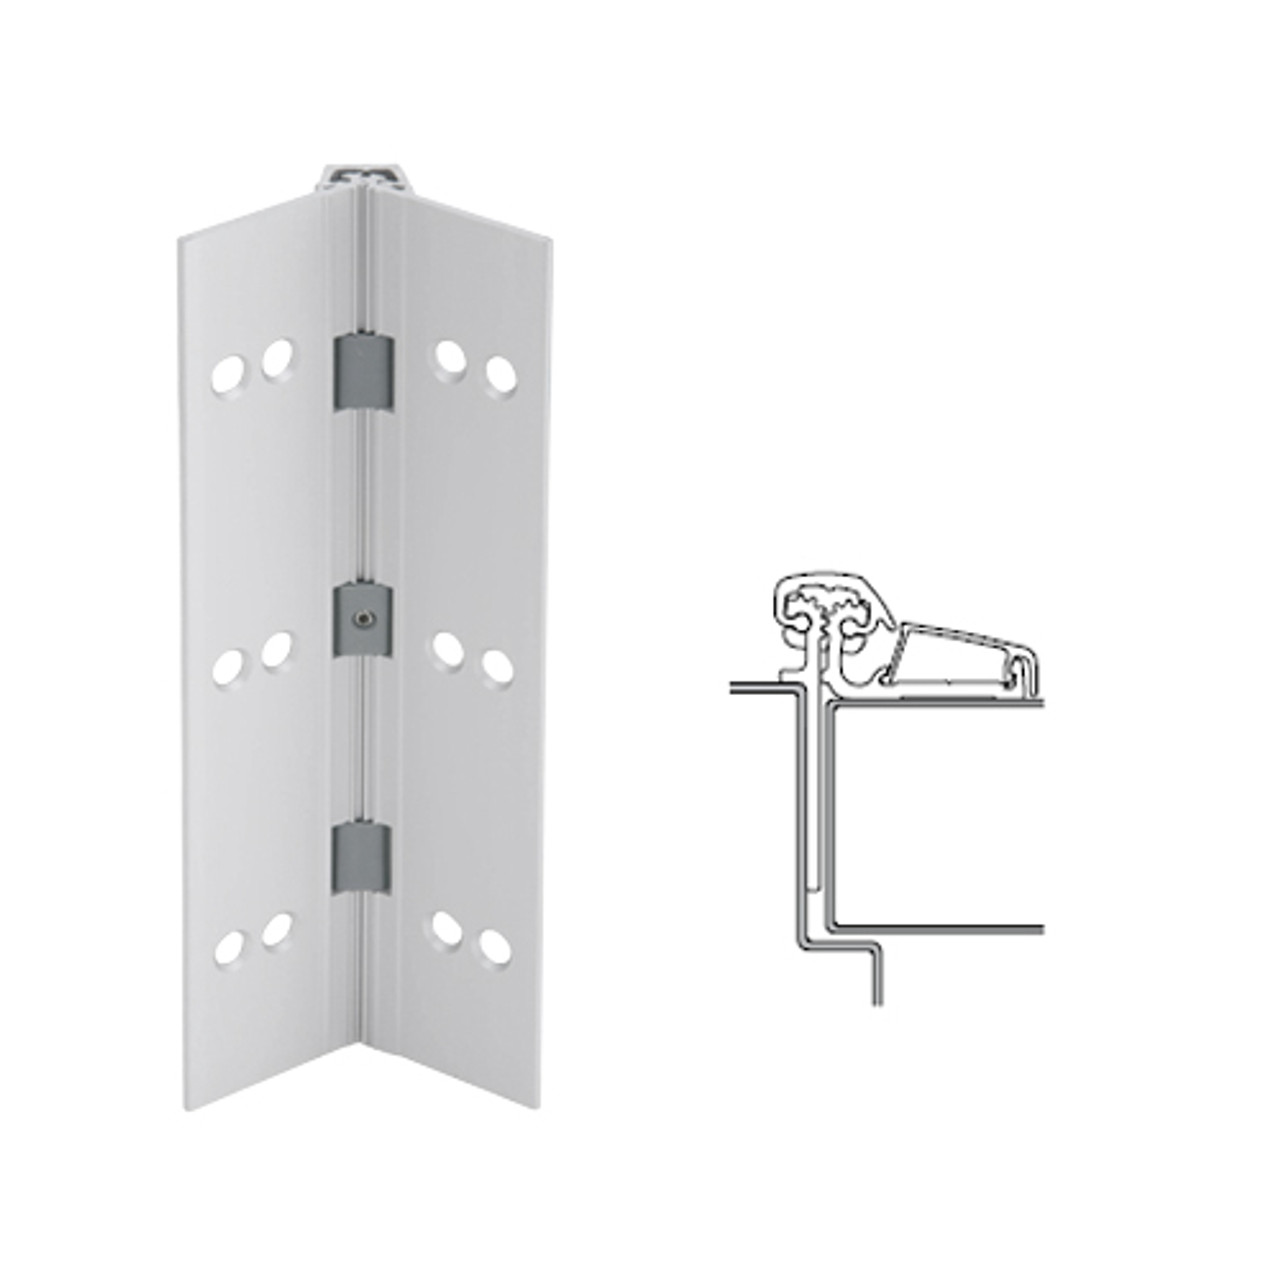 053XY-US28-120-WD IVES Adjustable Half Surface Continuous Geared Hinges with Wood Screws in Satin Aluminum